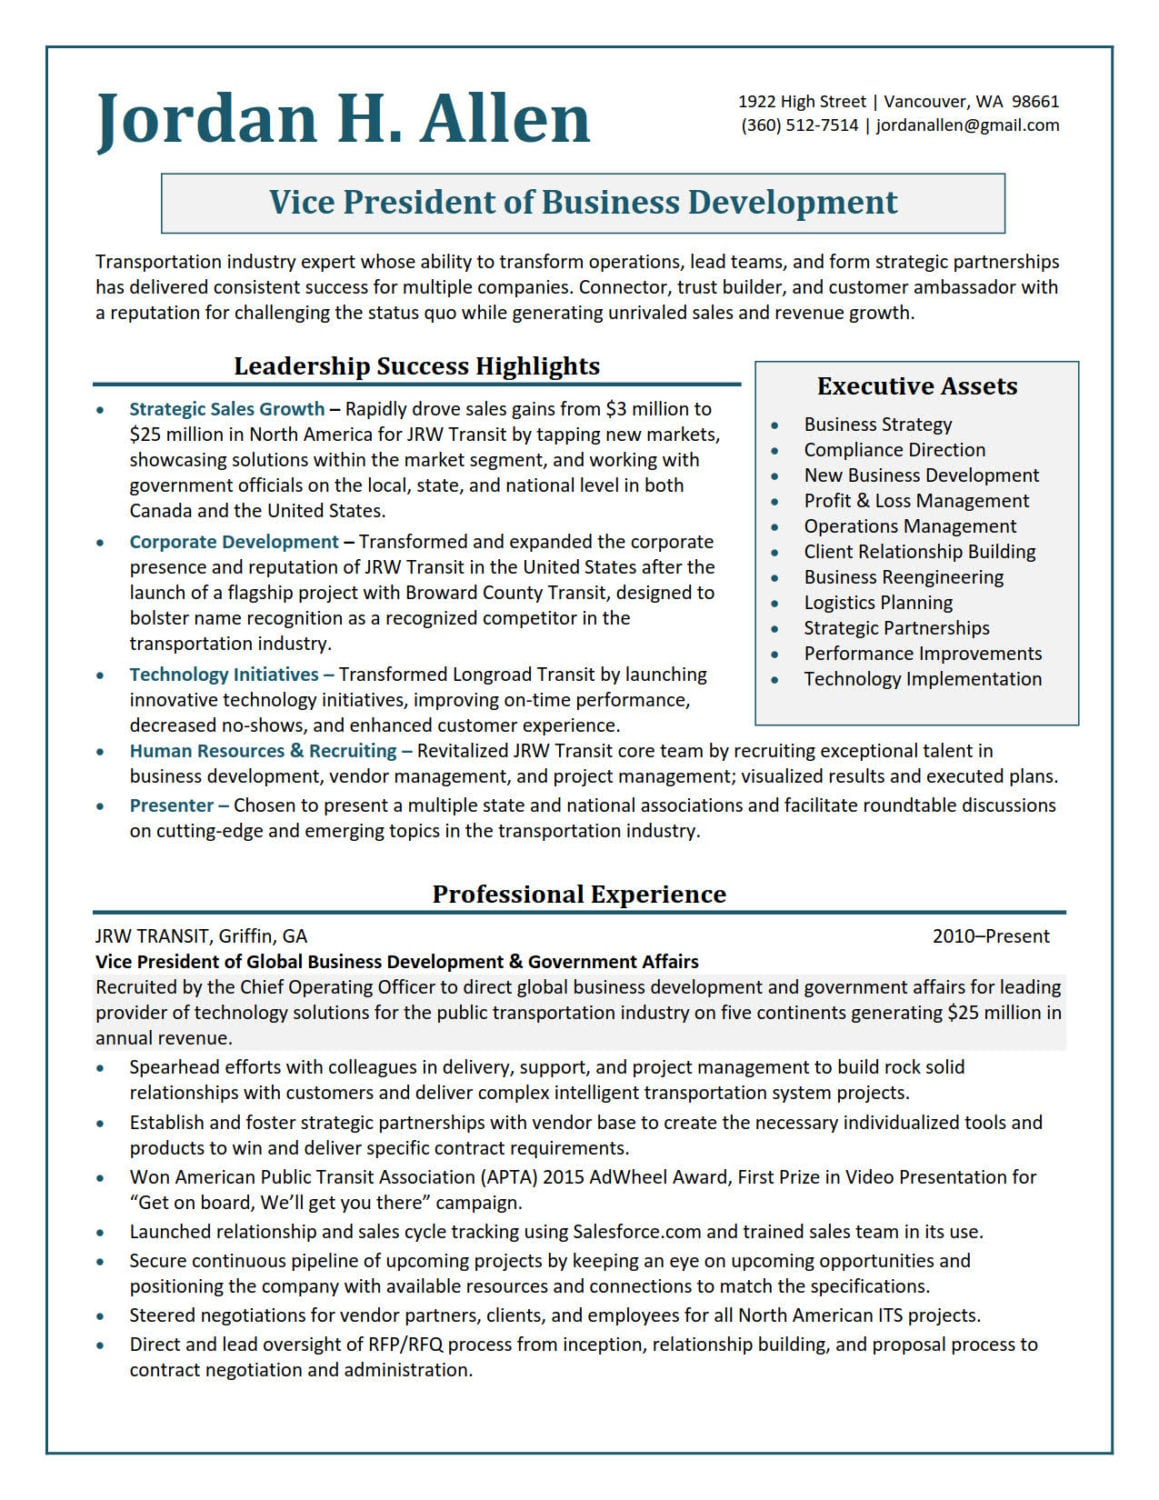 Vice-President-Business-Development Resume Samples